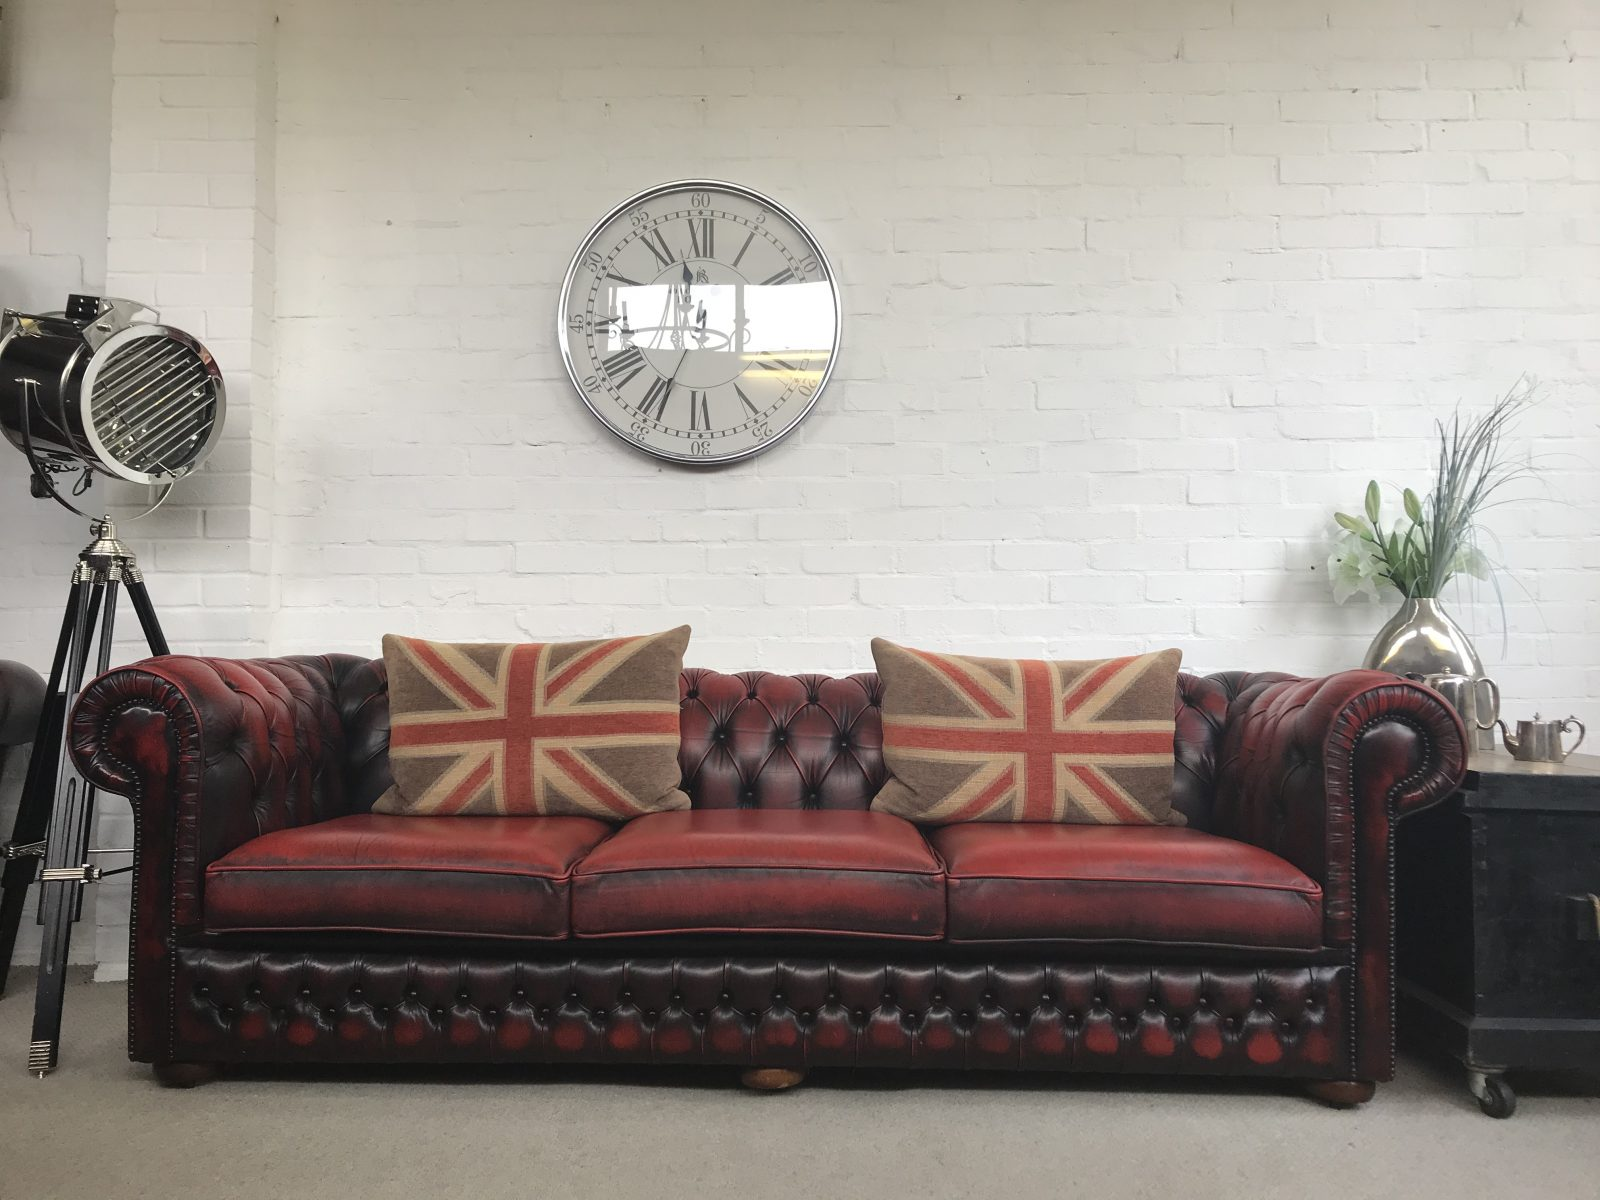 Vintage 4 Seater Chesterfield Sofa.